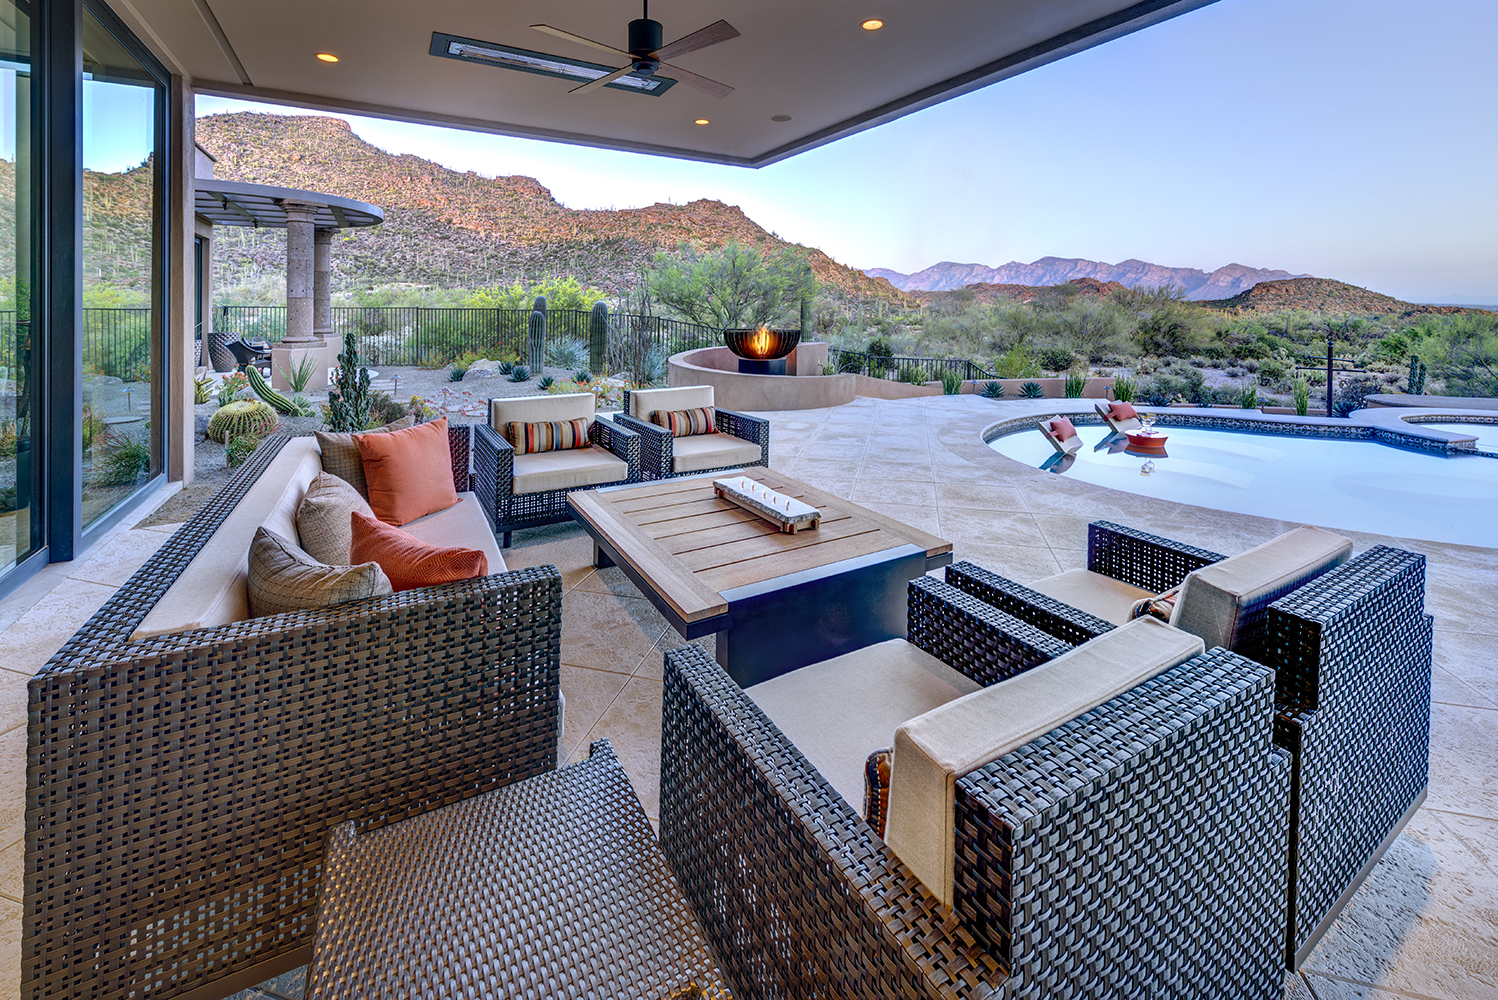 This backyard oasis combines the basics of interior design with outdoor living by Lori Carroll & Associates